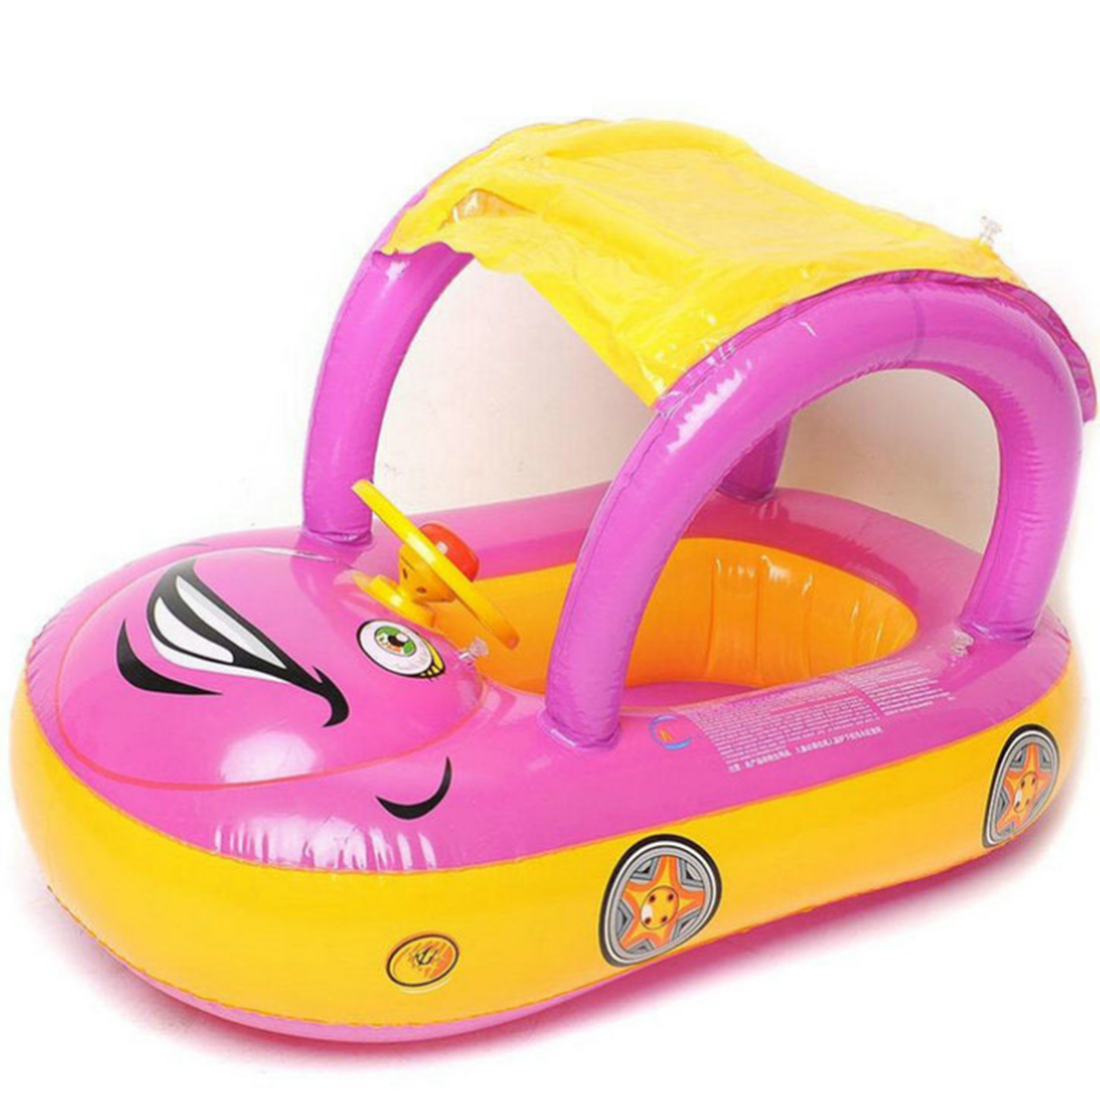 Inflatable Baby Pool Float Safety Car Shape Swimming Ring with Sun Canopy Sunshade